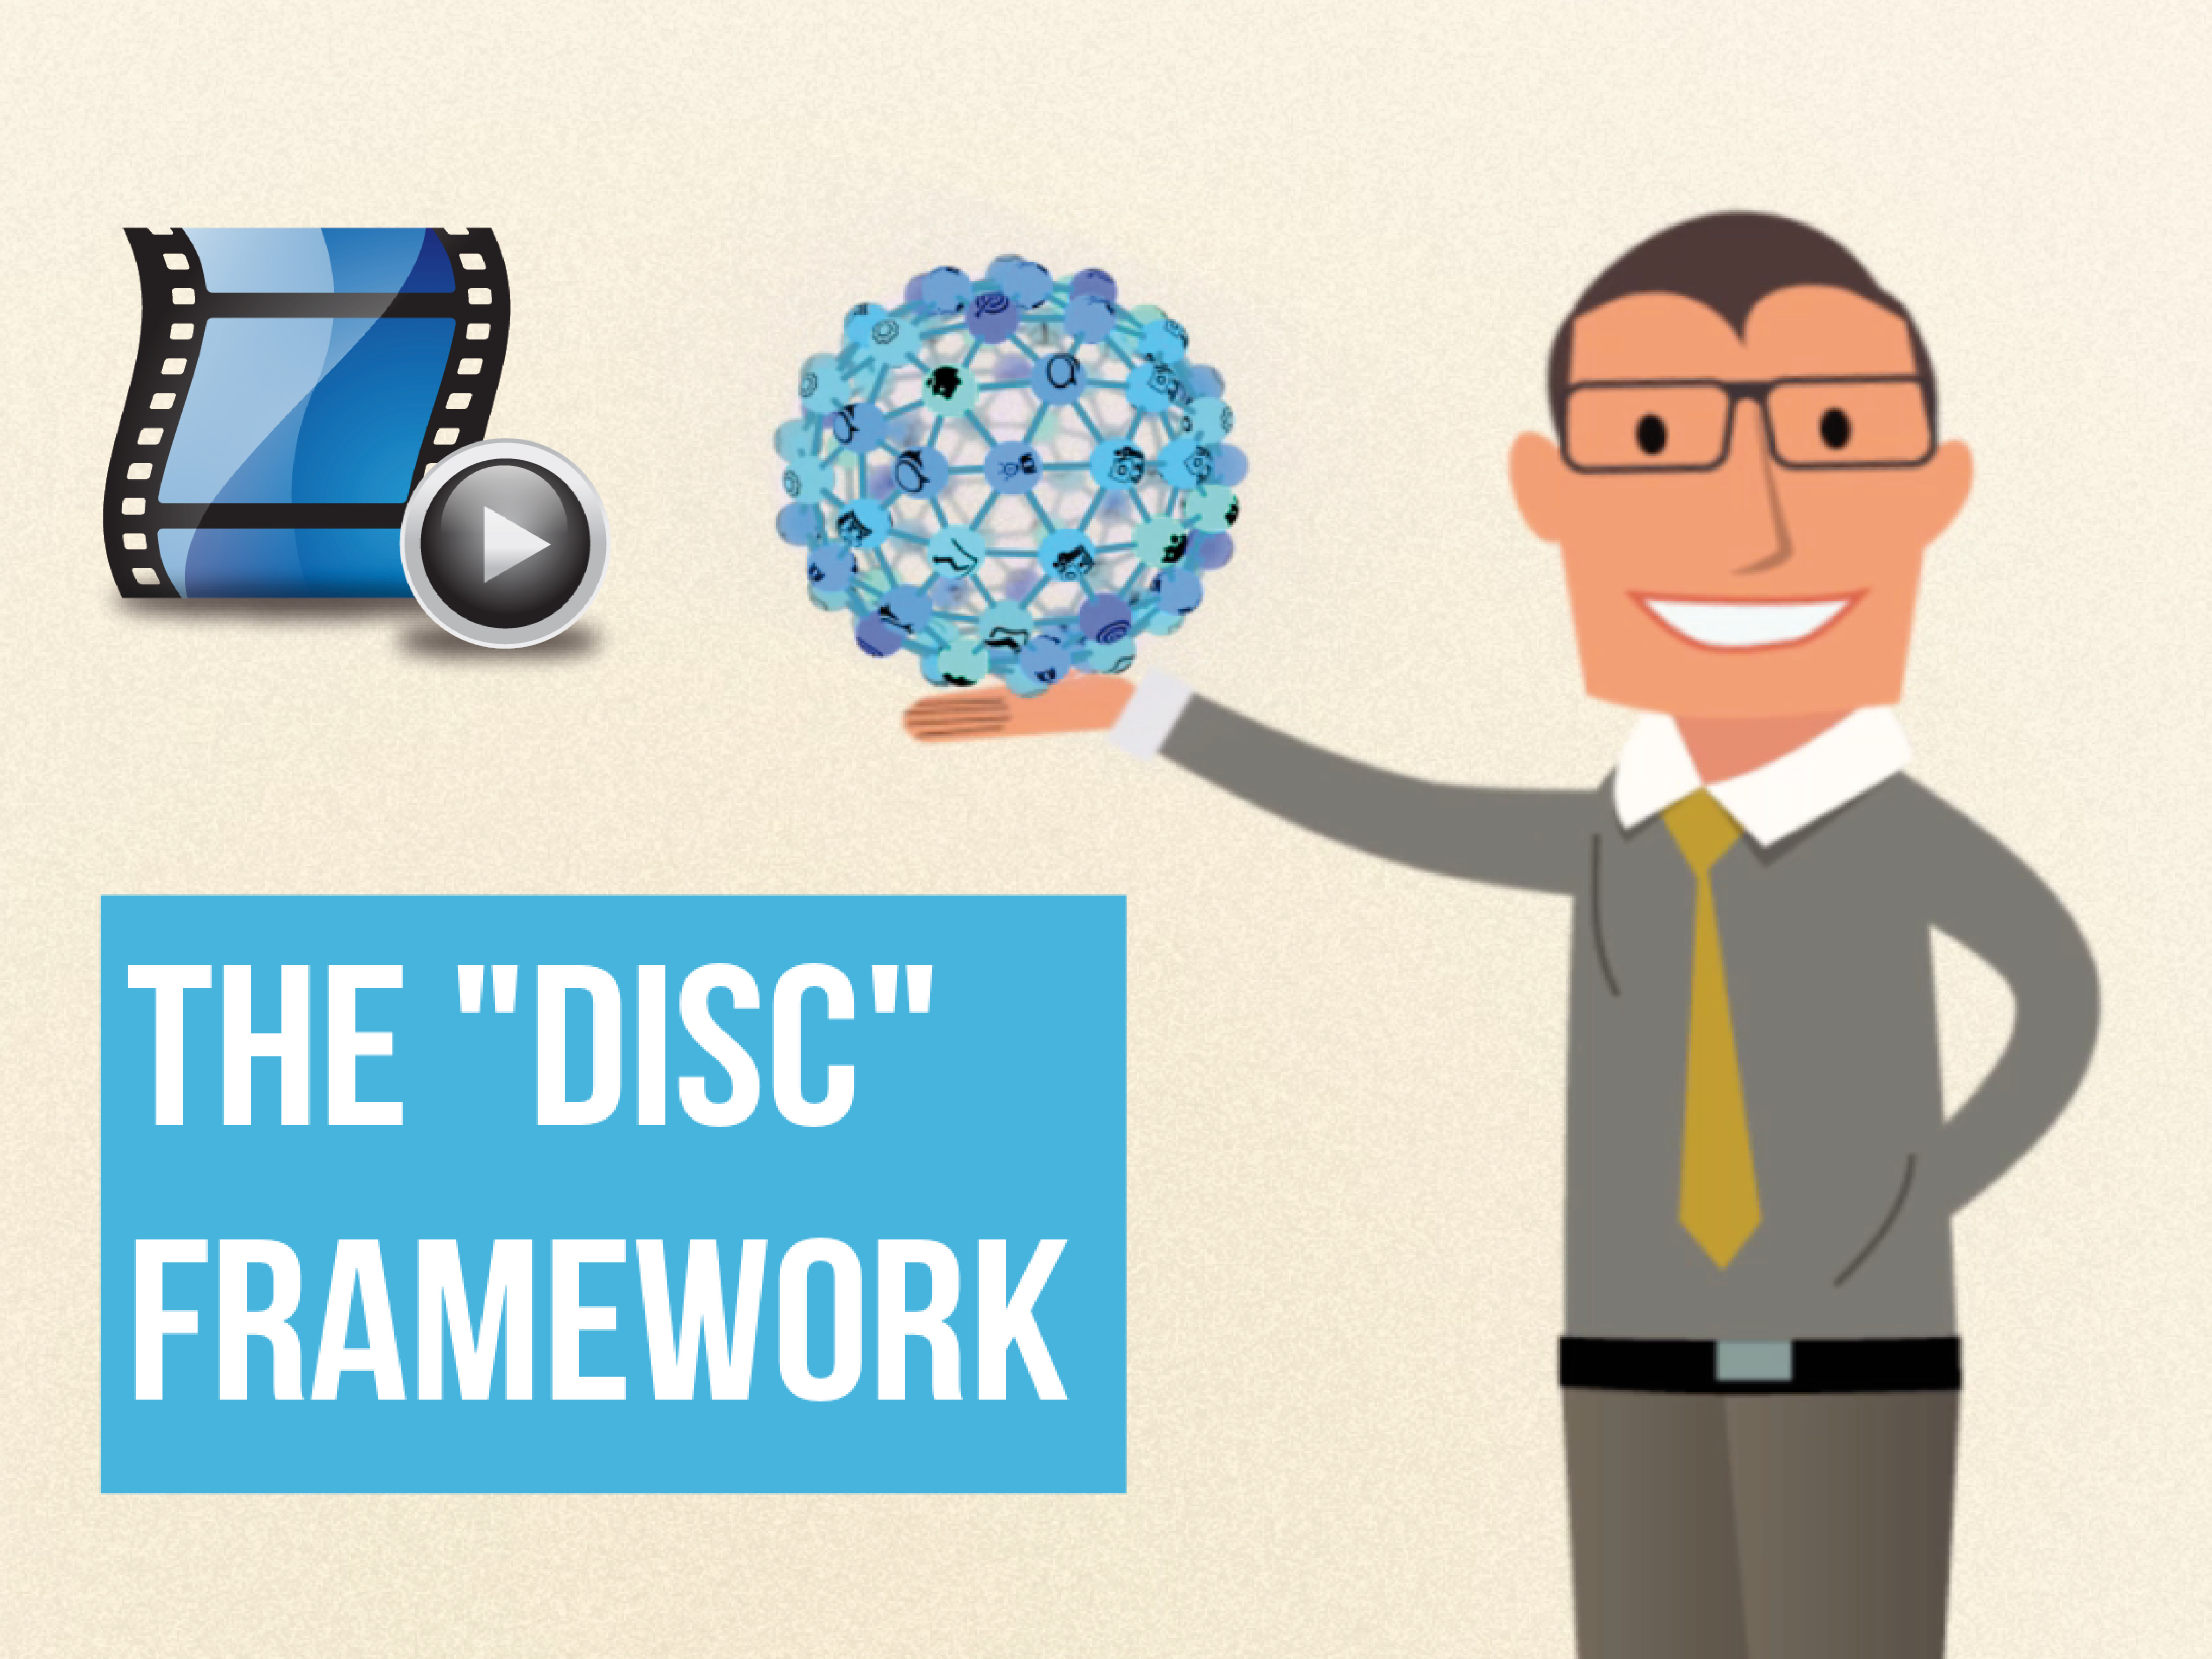 The DISC models describes behaviours and can be used for management development and team development